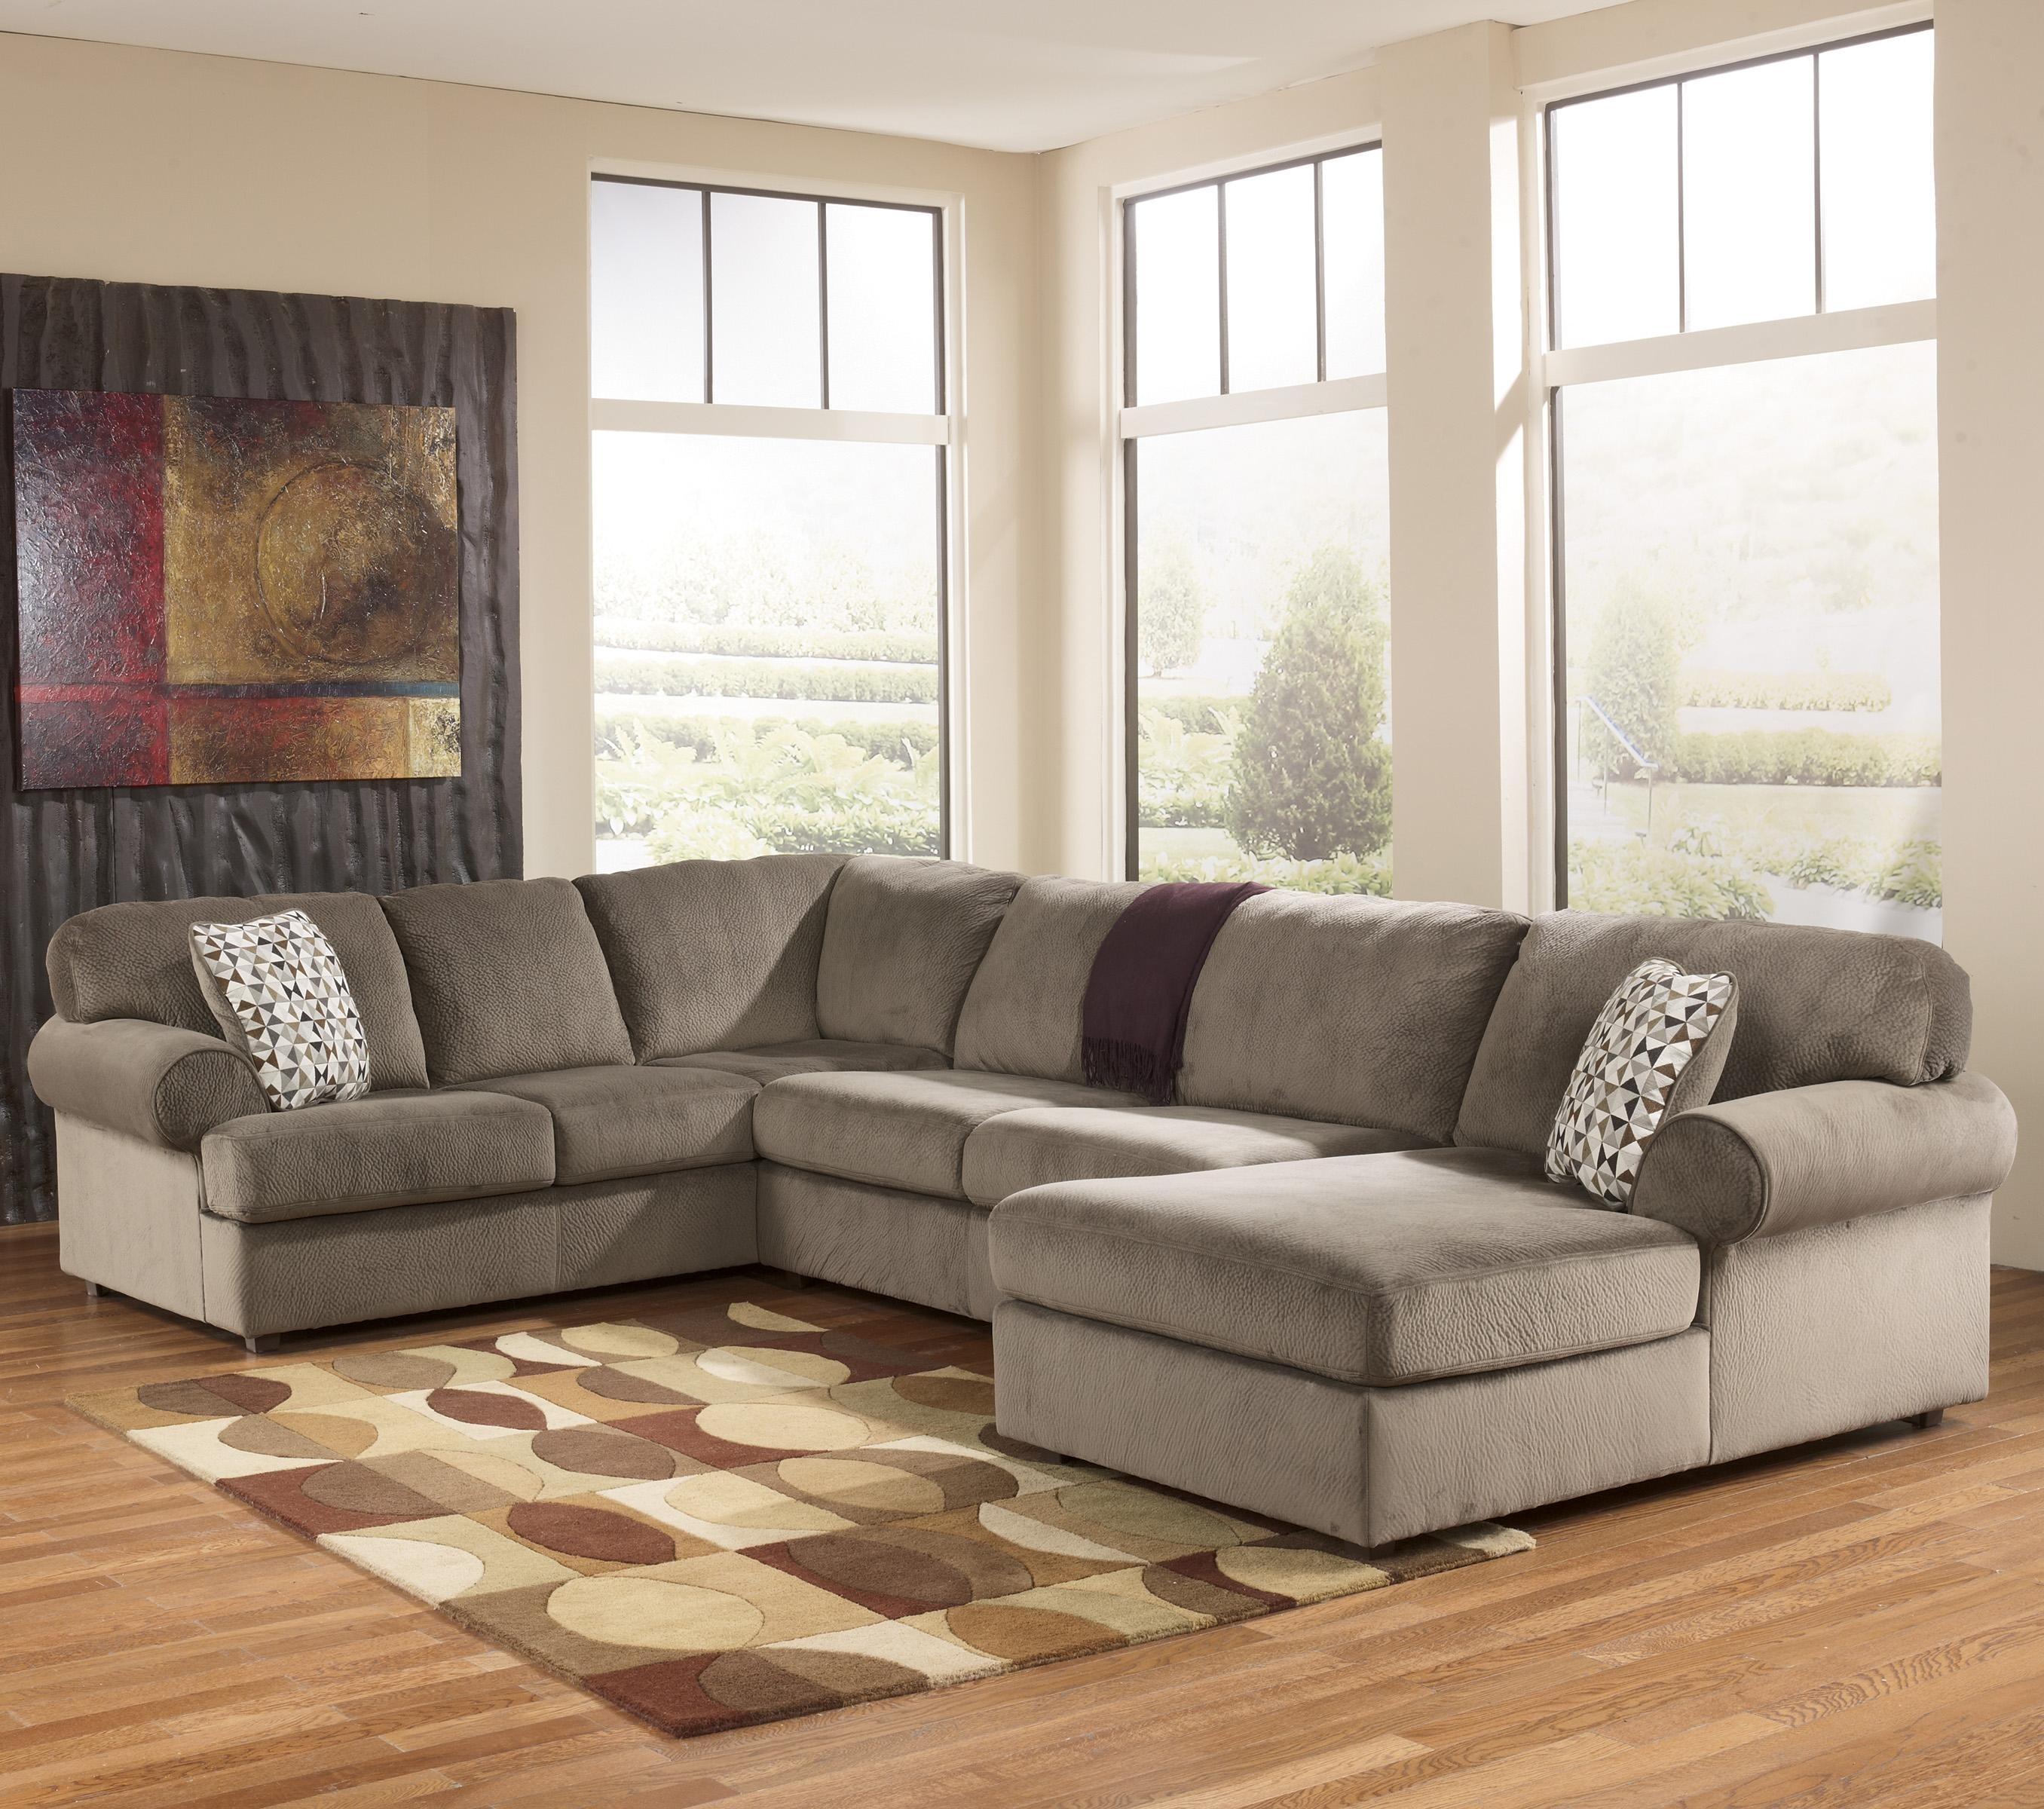 Signature Designashley Jessa Place - Dune Casual Sectional Sofa in Clarksville Tn Sectional Sofas (Image 8 of 10)